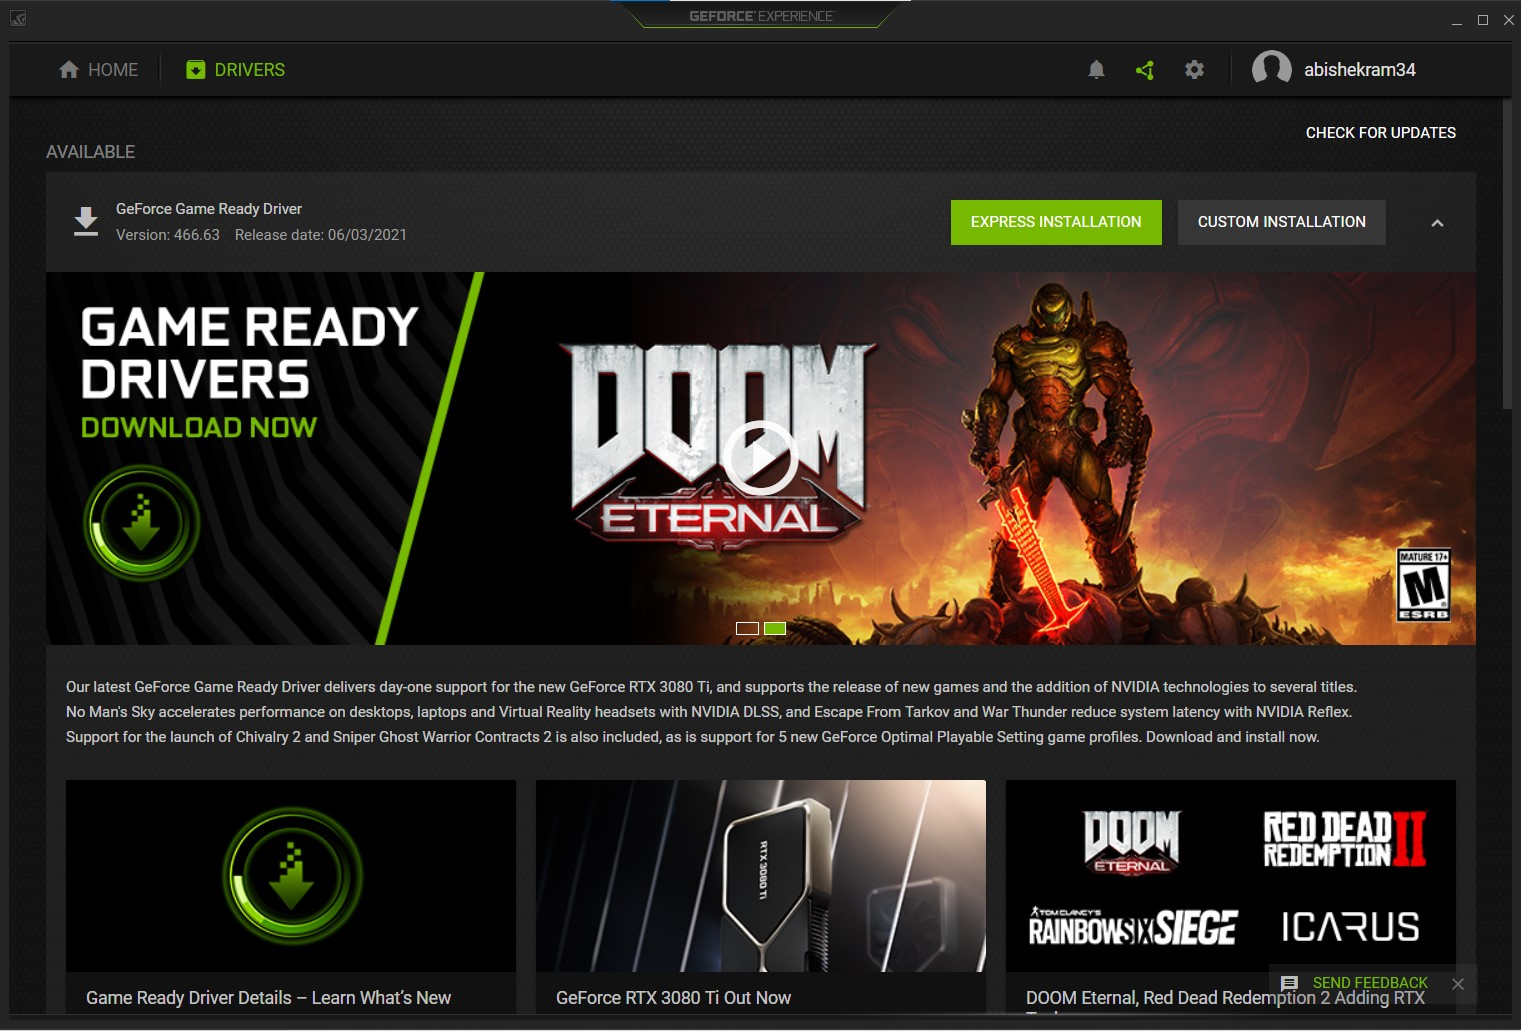 The Nvidia GeForce Experience home window